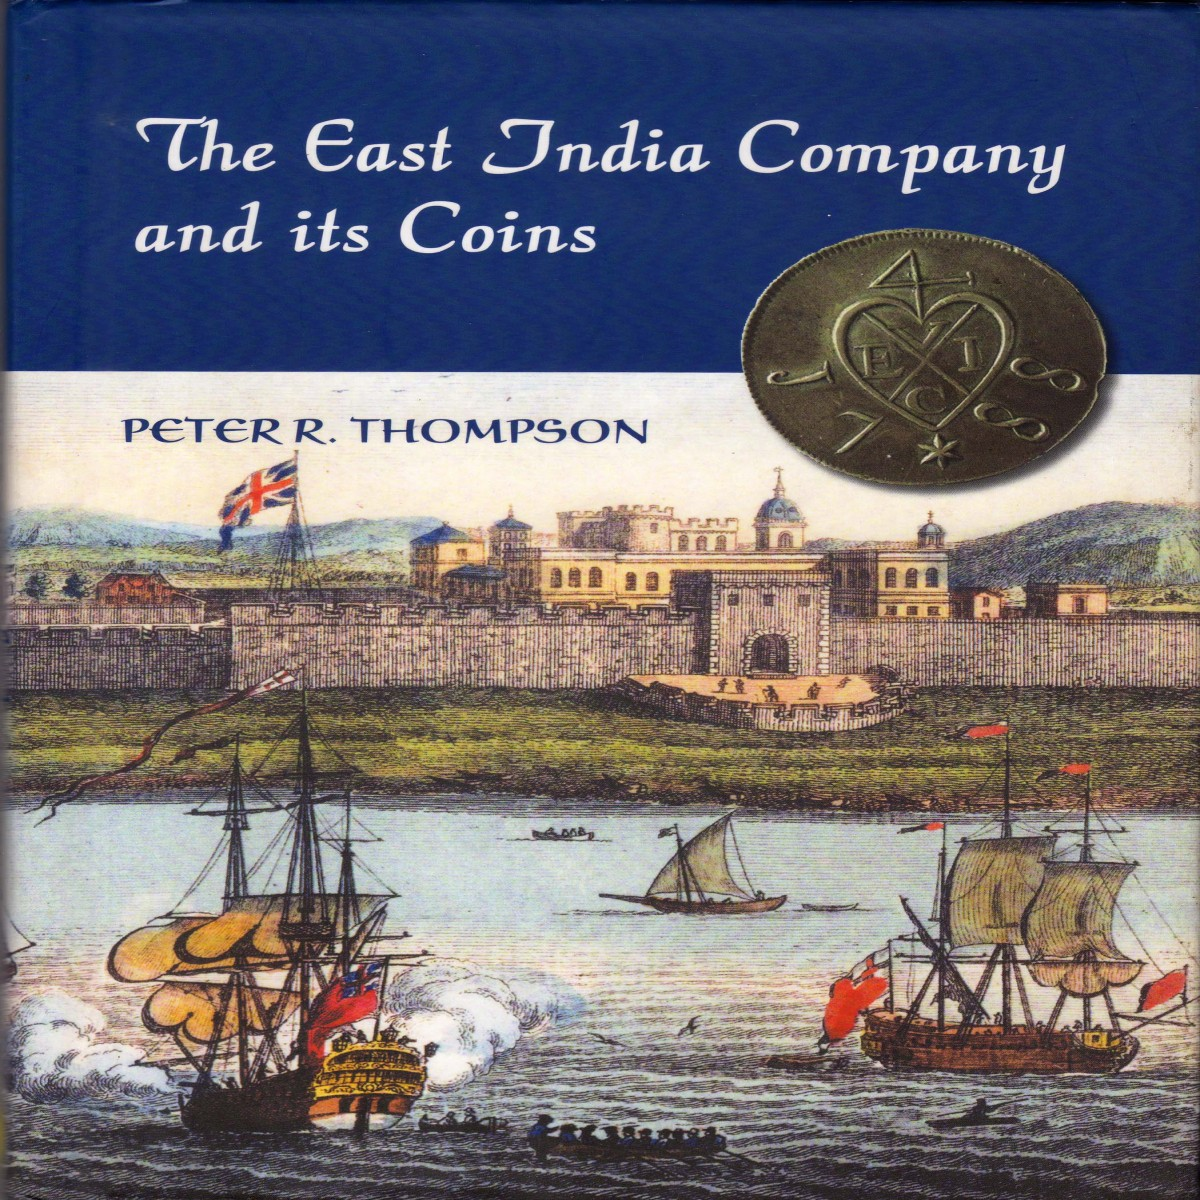 The East India Company and its Coins